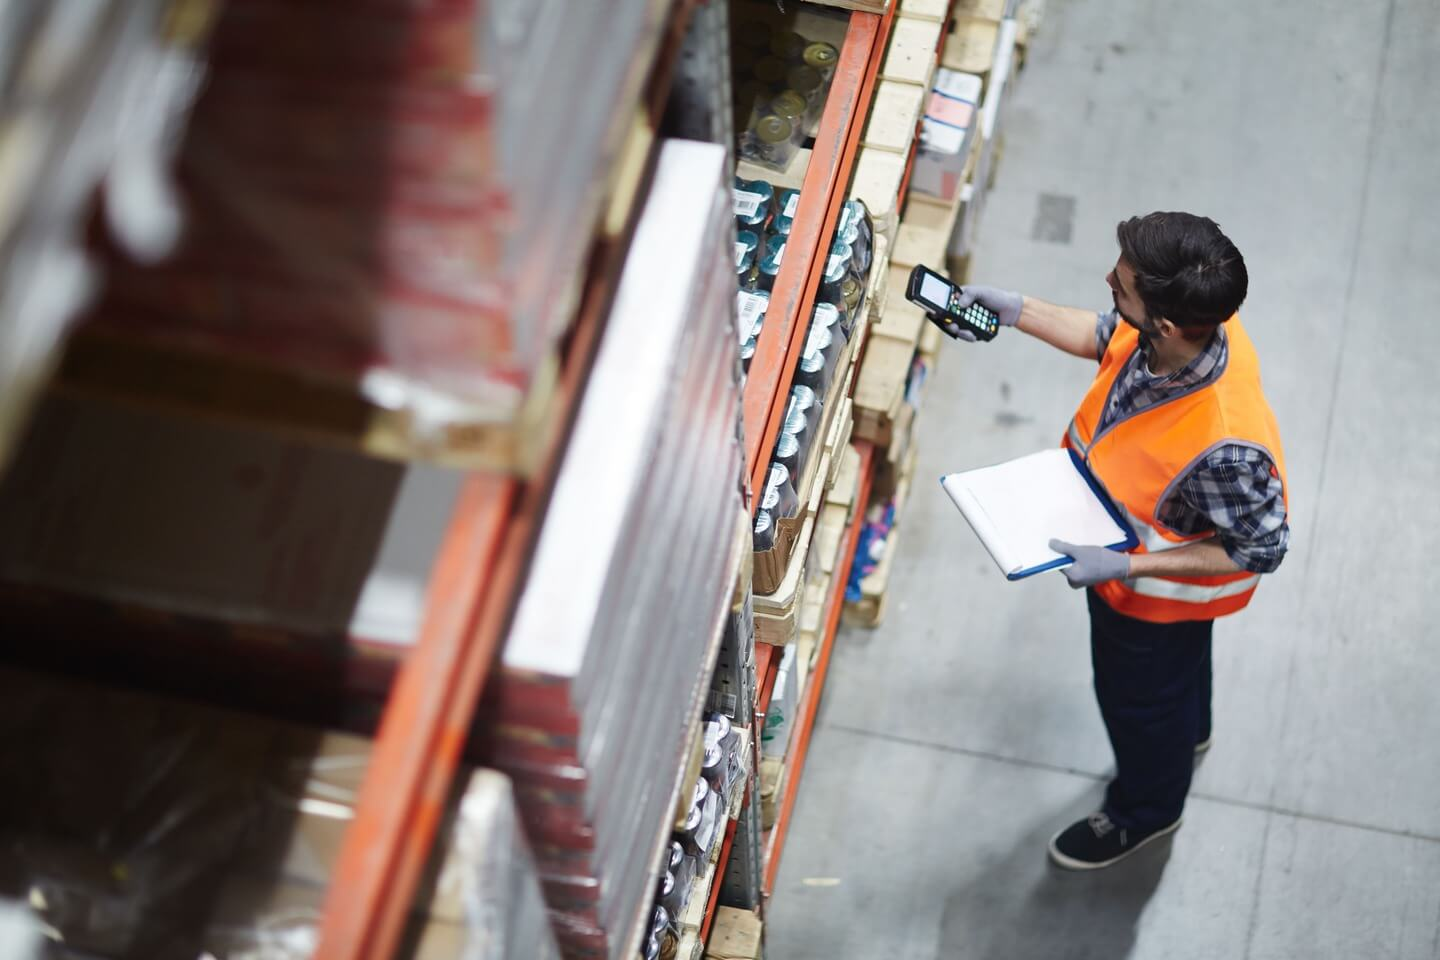 warehouse management sysytem facilitate workers to work easier